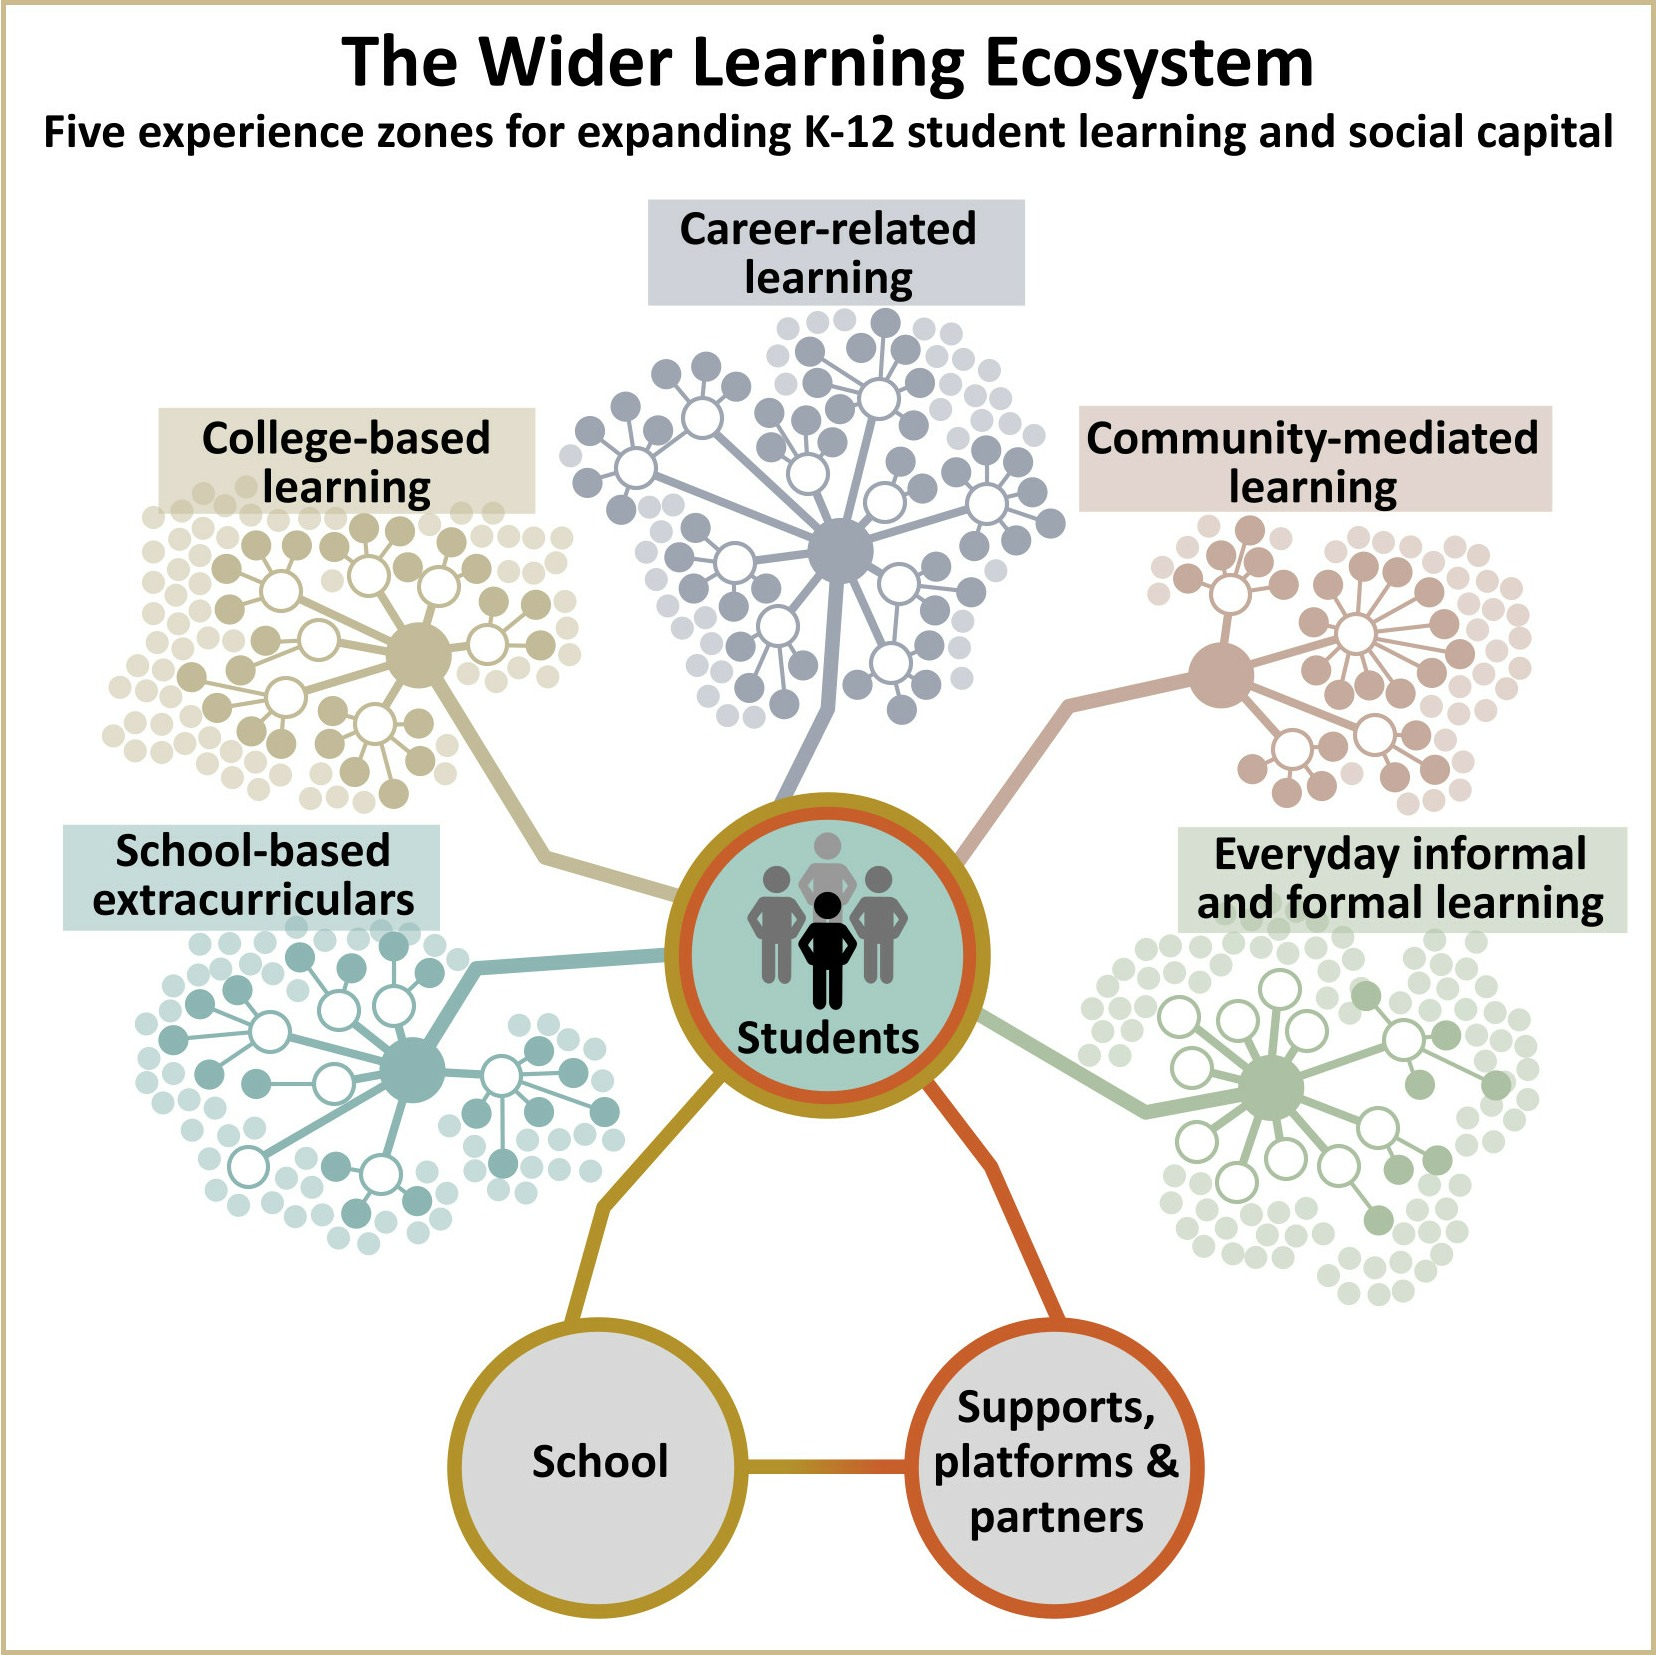 wider+learning+ecosystem+20171107v2-3+title.jpg